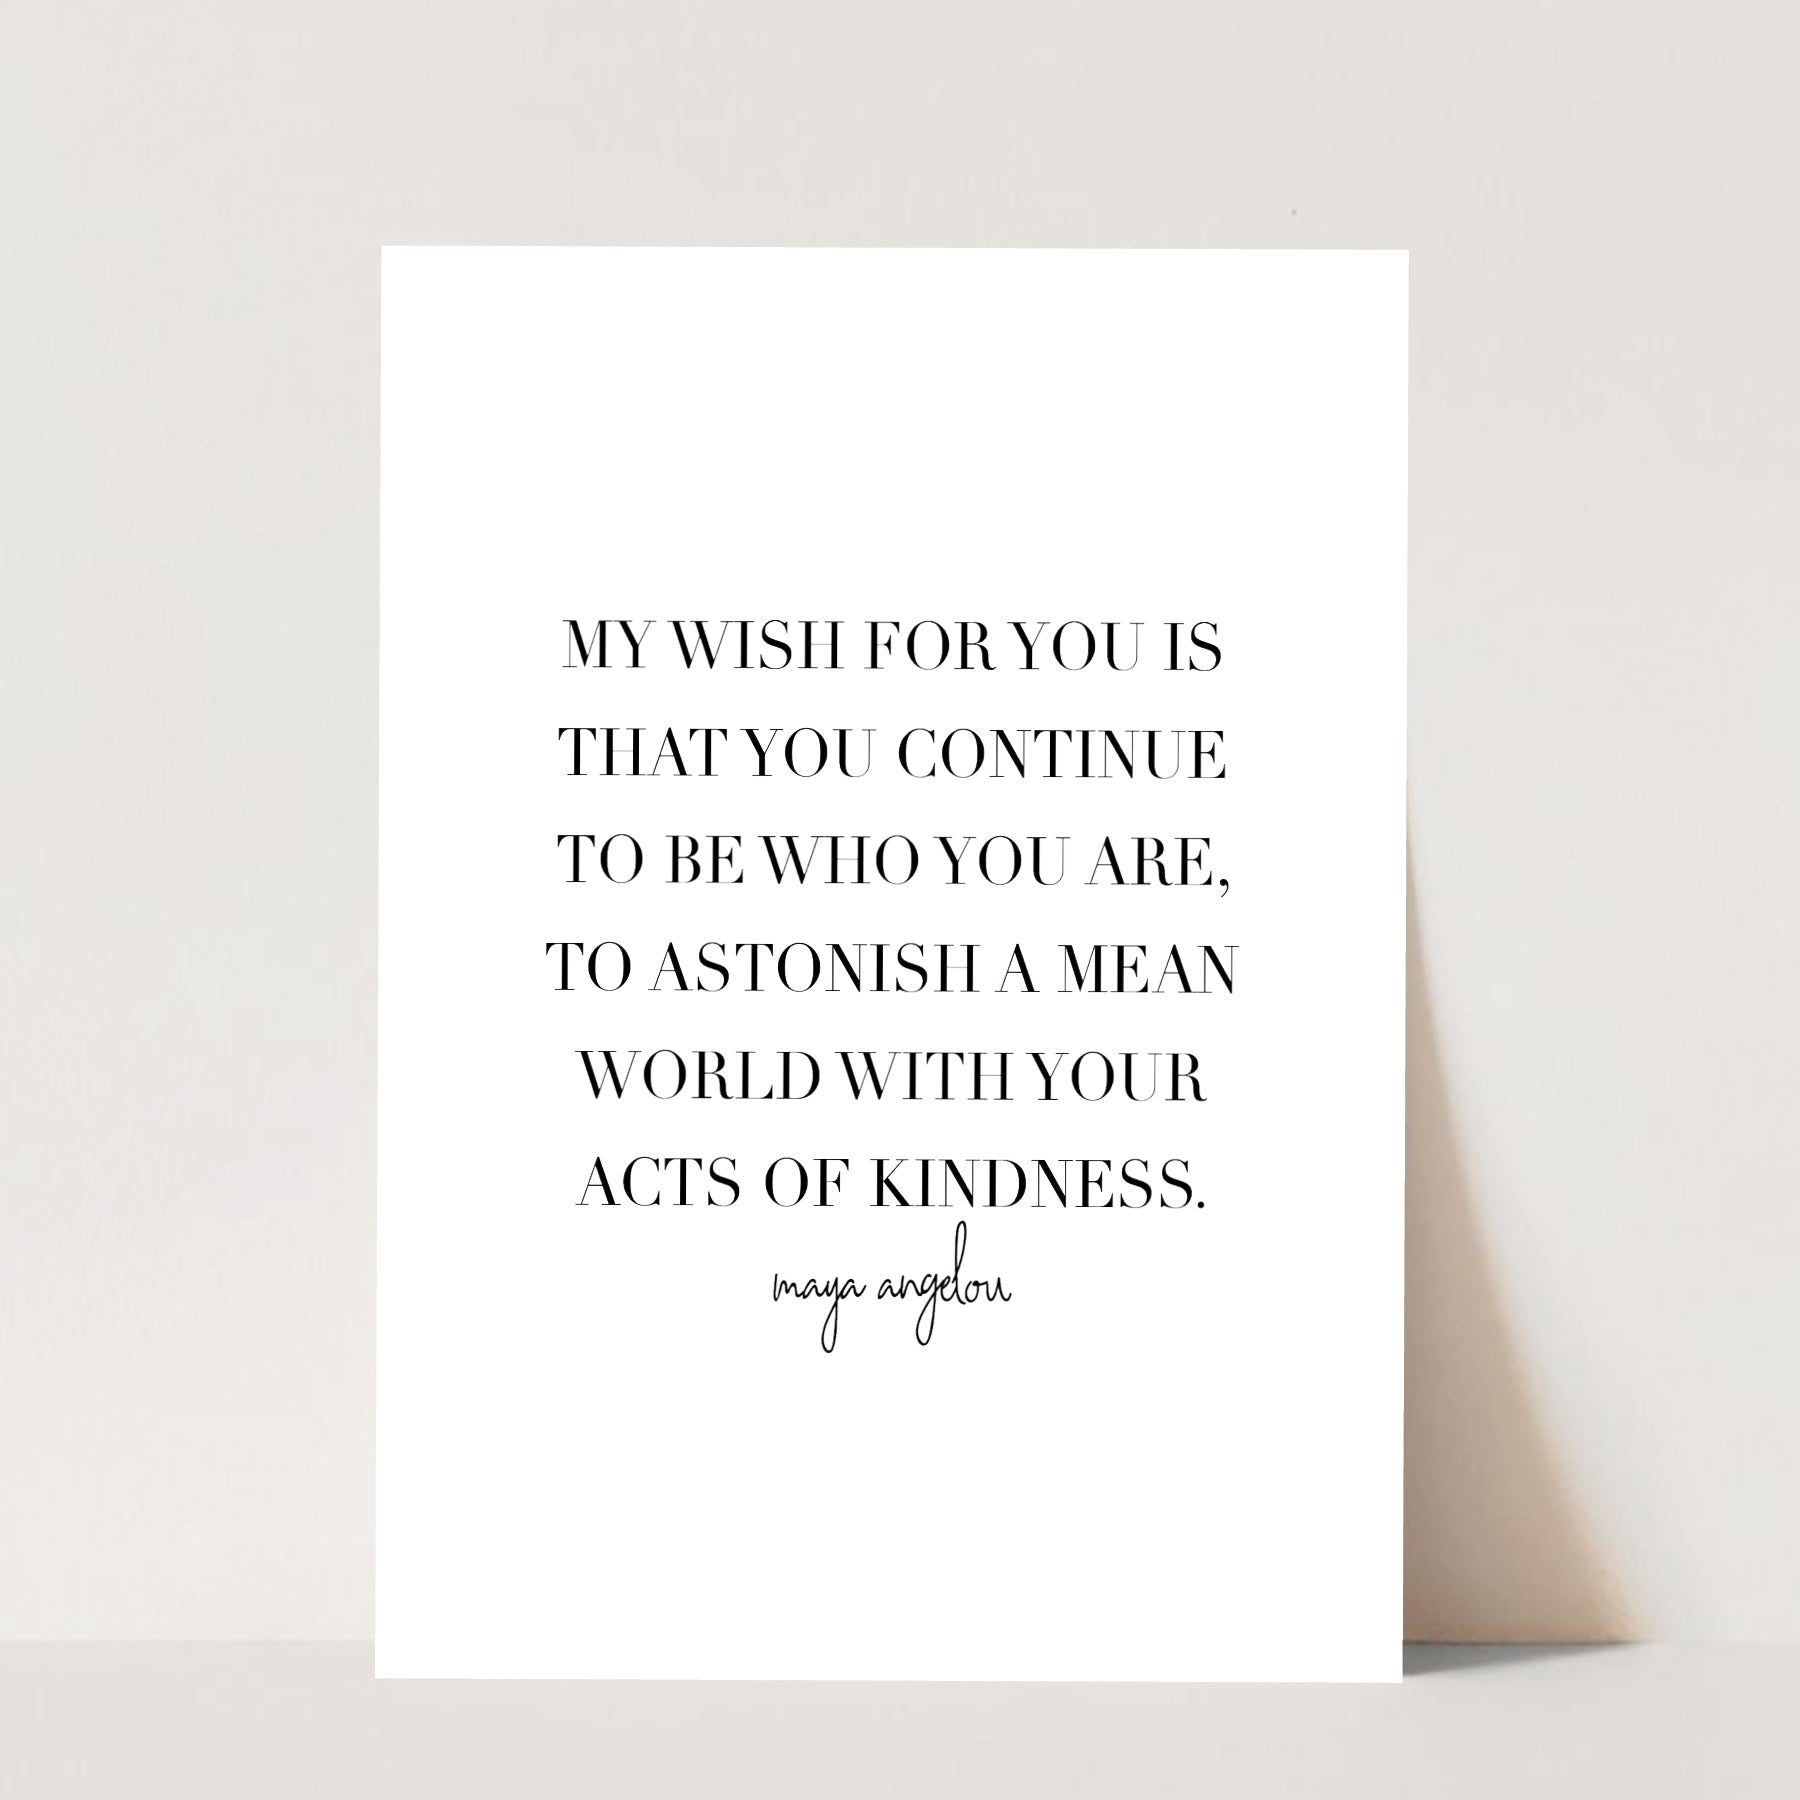 My Wish for You Is that You Continue to be Who You Are, to Astonish a Mean World with Your Acts of Kindness. -Maya Angelou Quote Print